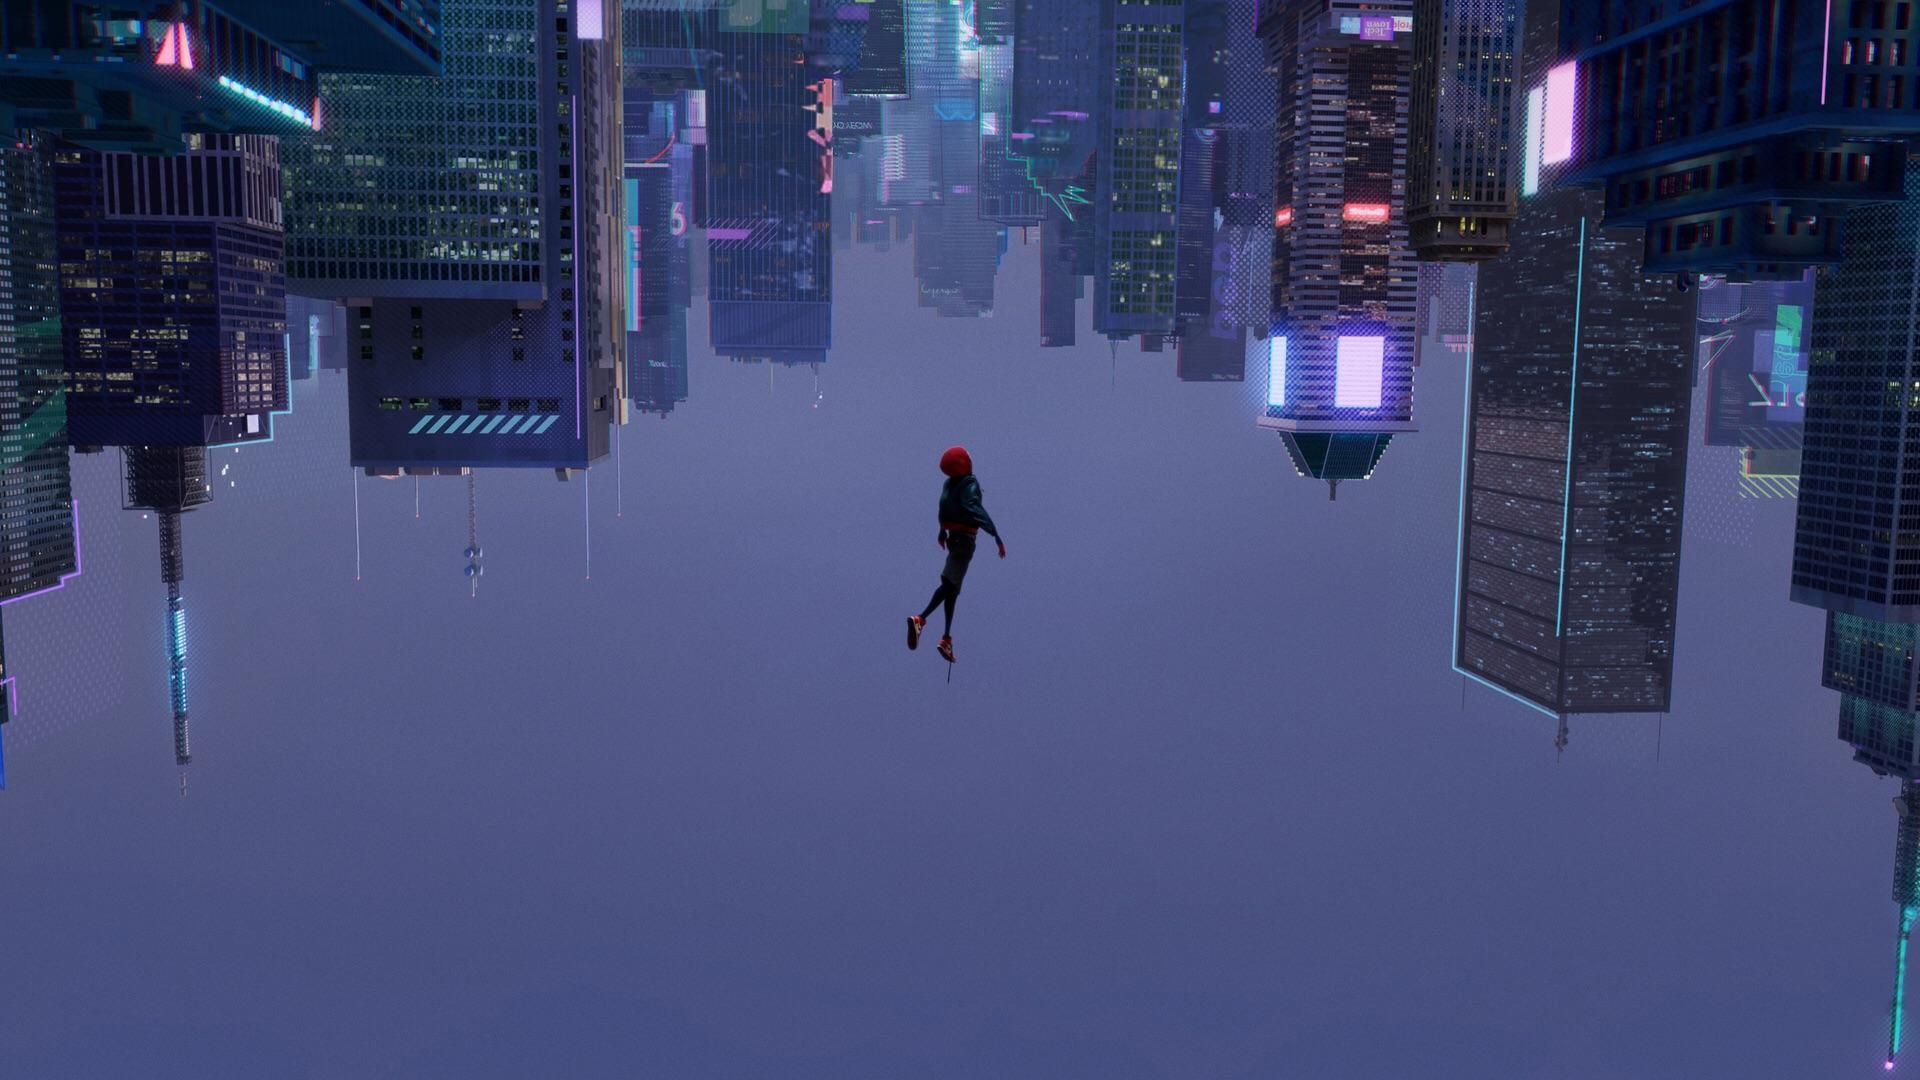 Into The Spider Verse 1920 X 1080 Animated Spider Spider Verse Miles Morales Spiderman